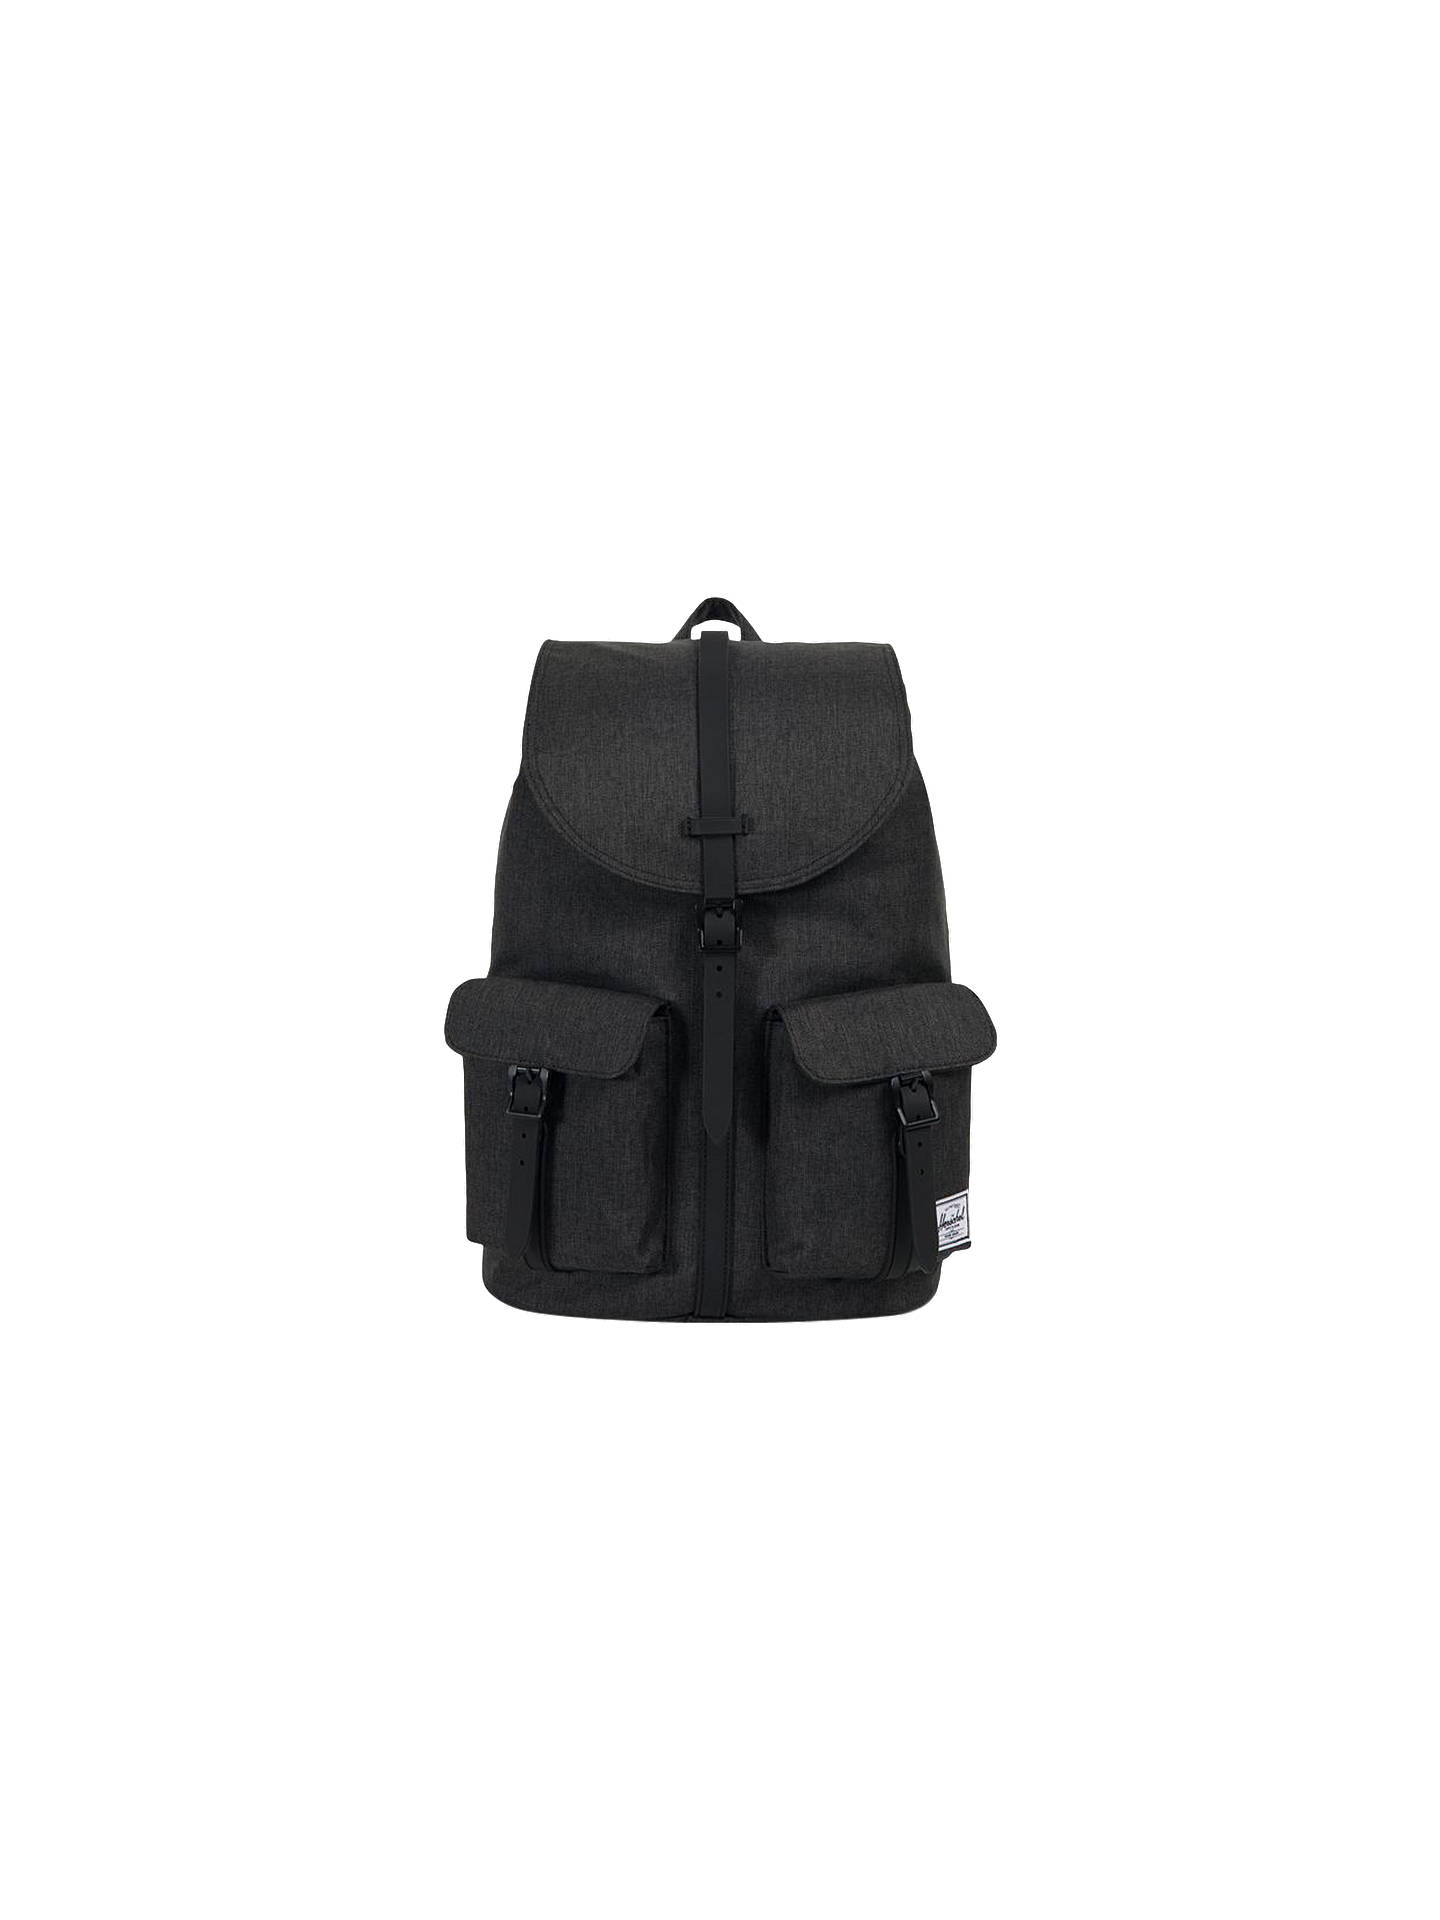 819a0e91c99 Buy Herschel Supply Co. Dawson Backpack